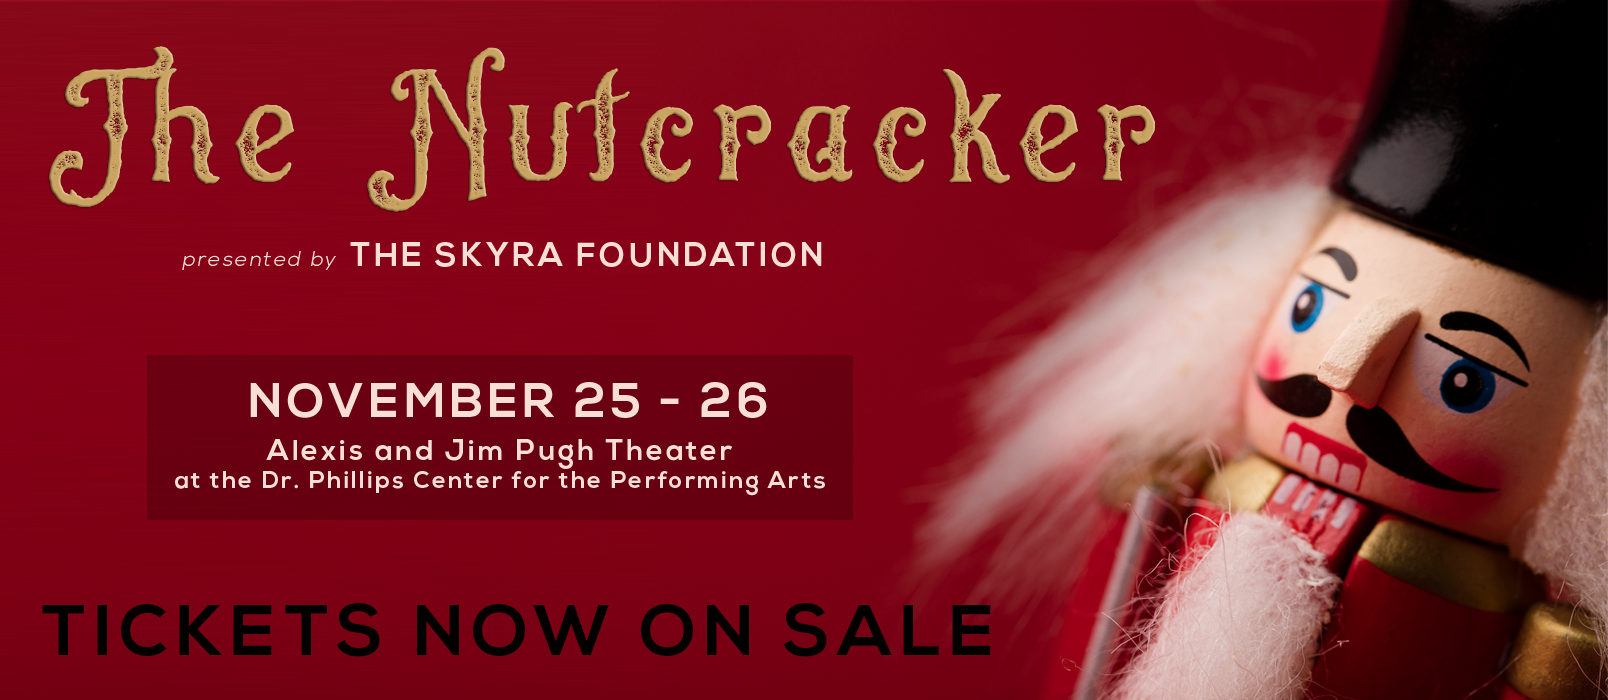 Nutcracker Tickets Now On Sale FB Cover